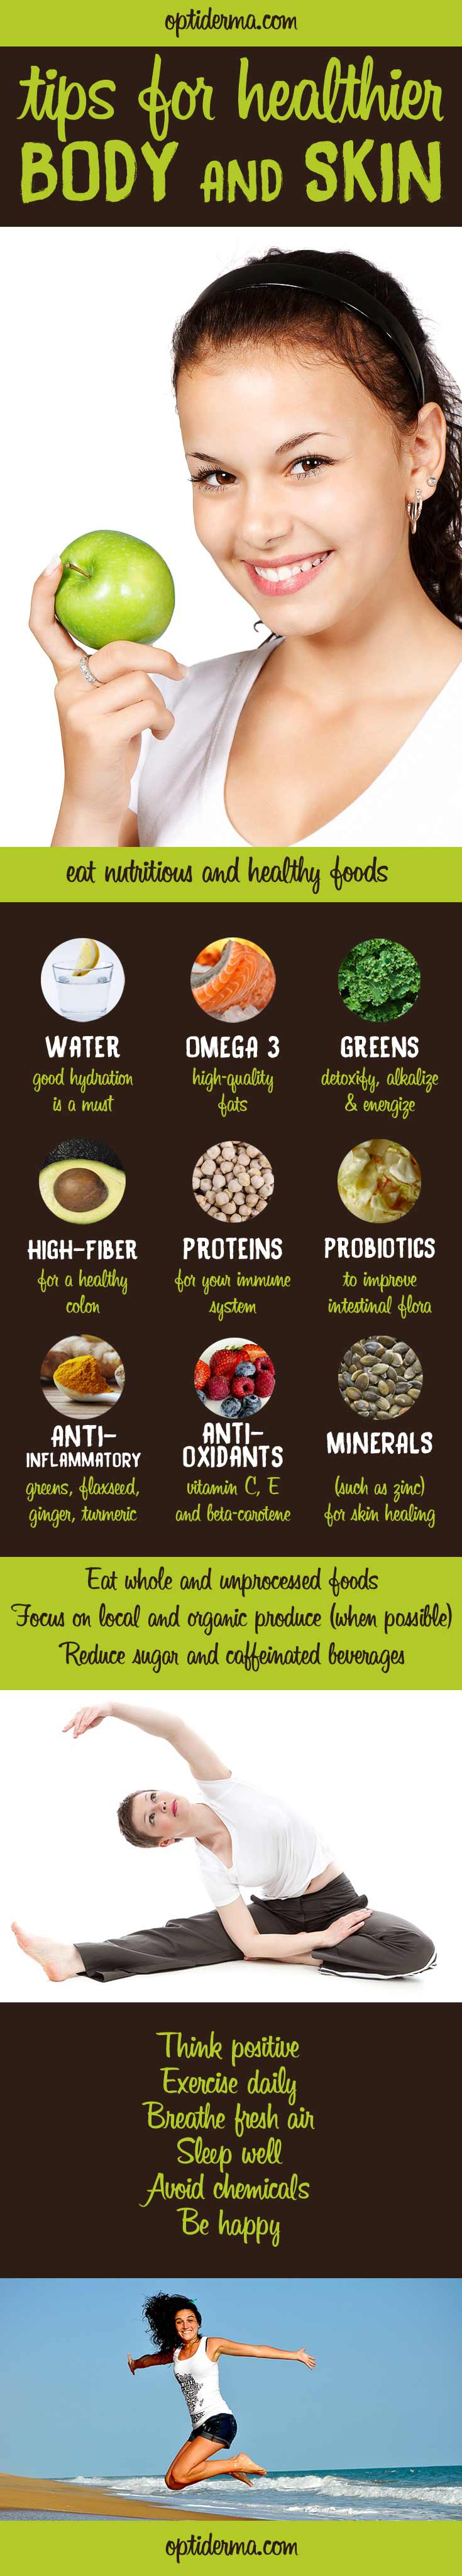 tips for healthier body & skin